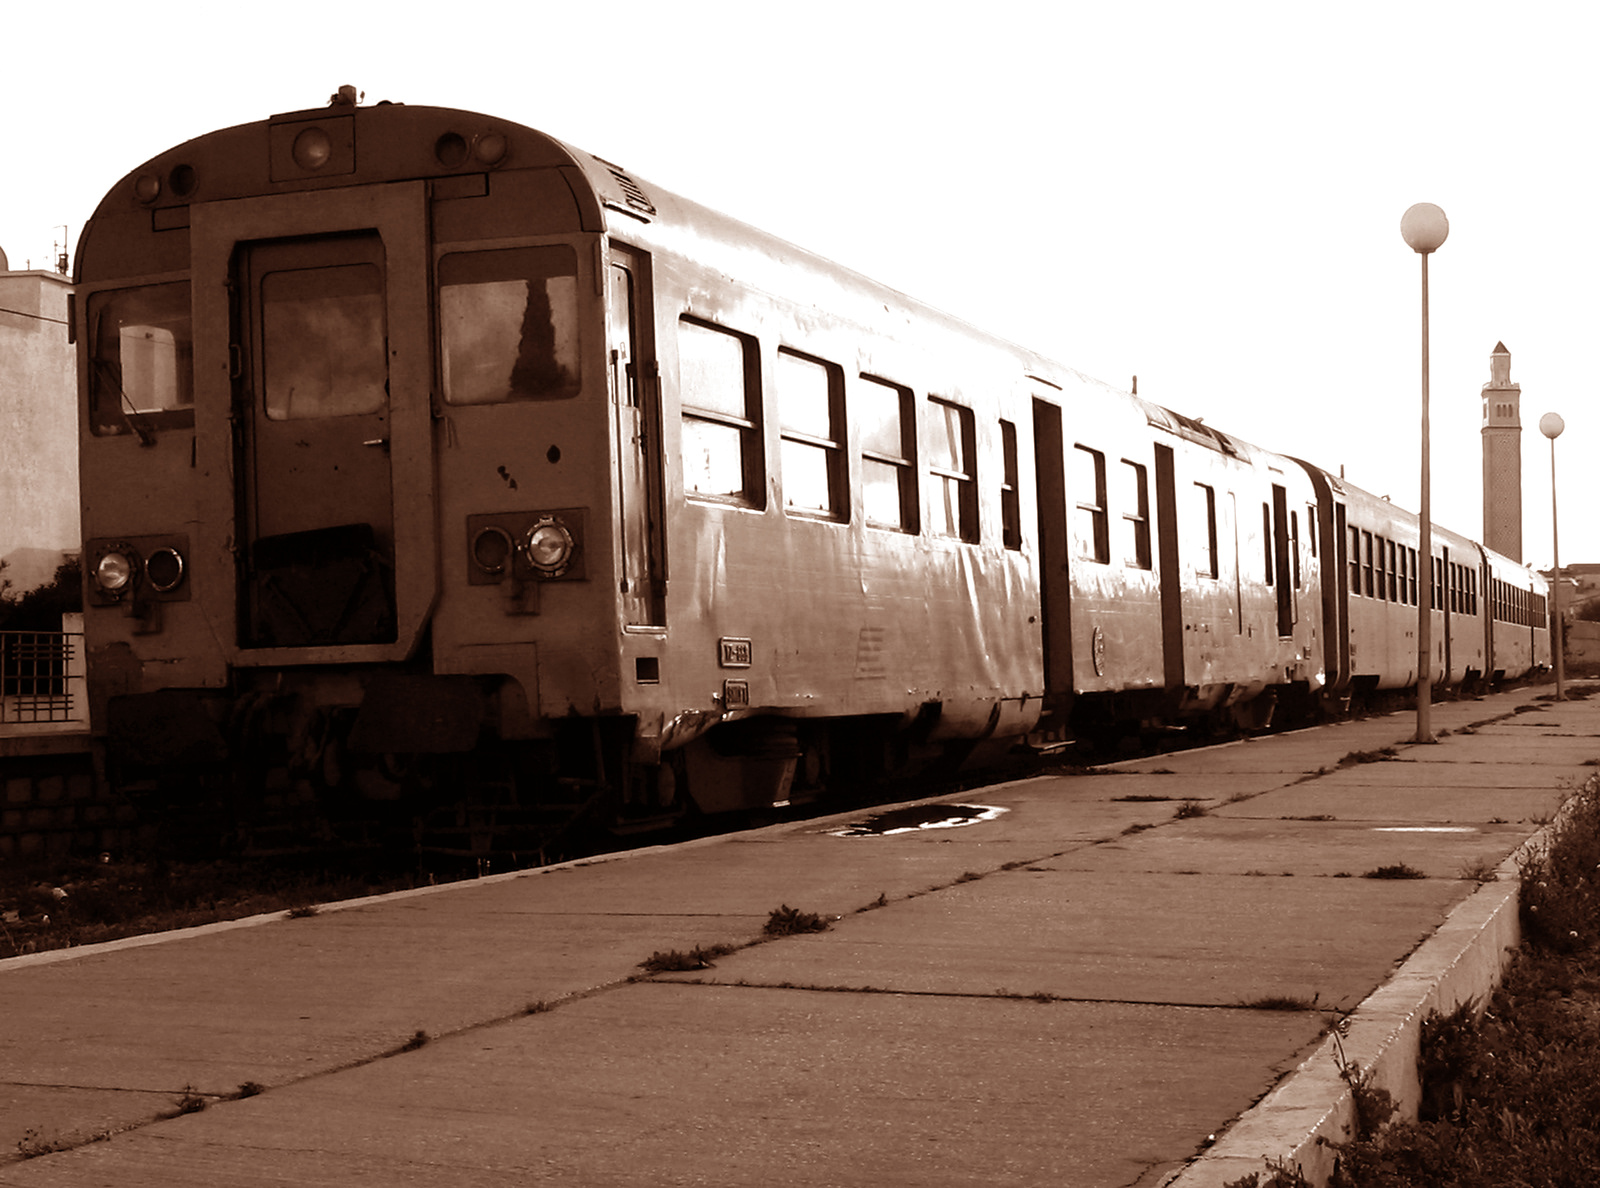 Sepia Train 226020 by StockProject1